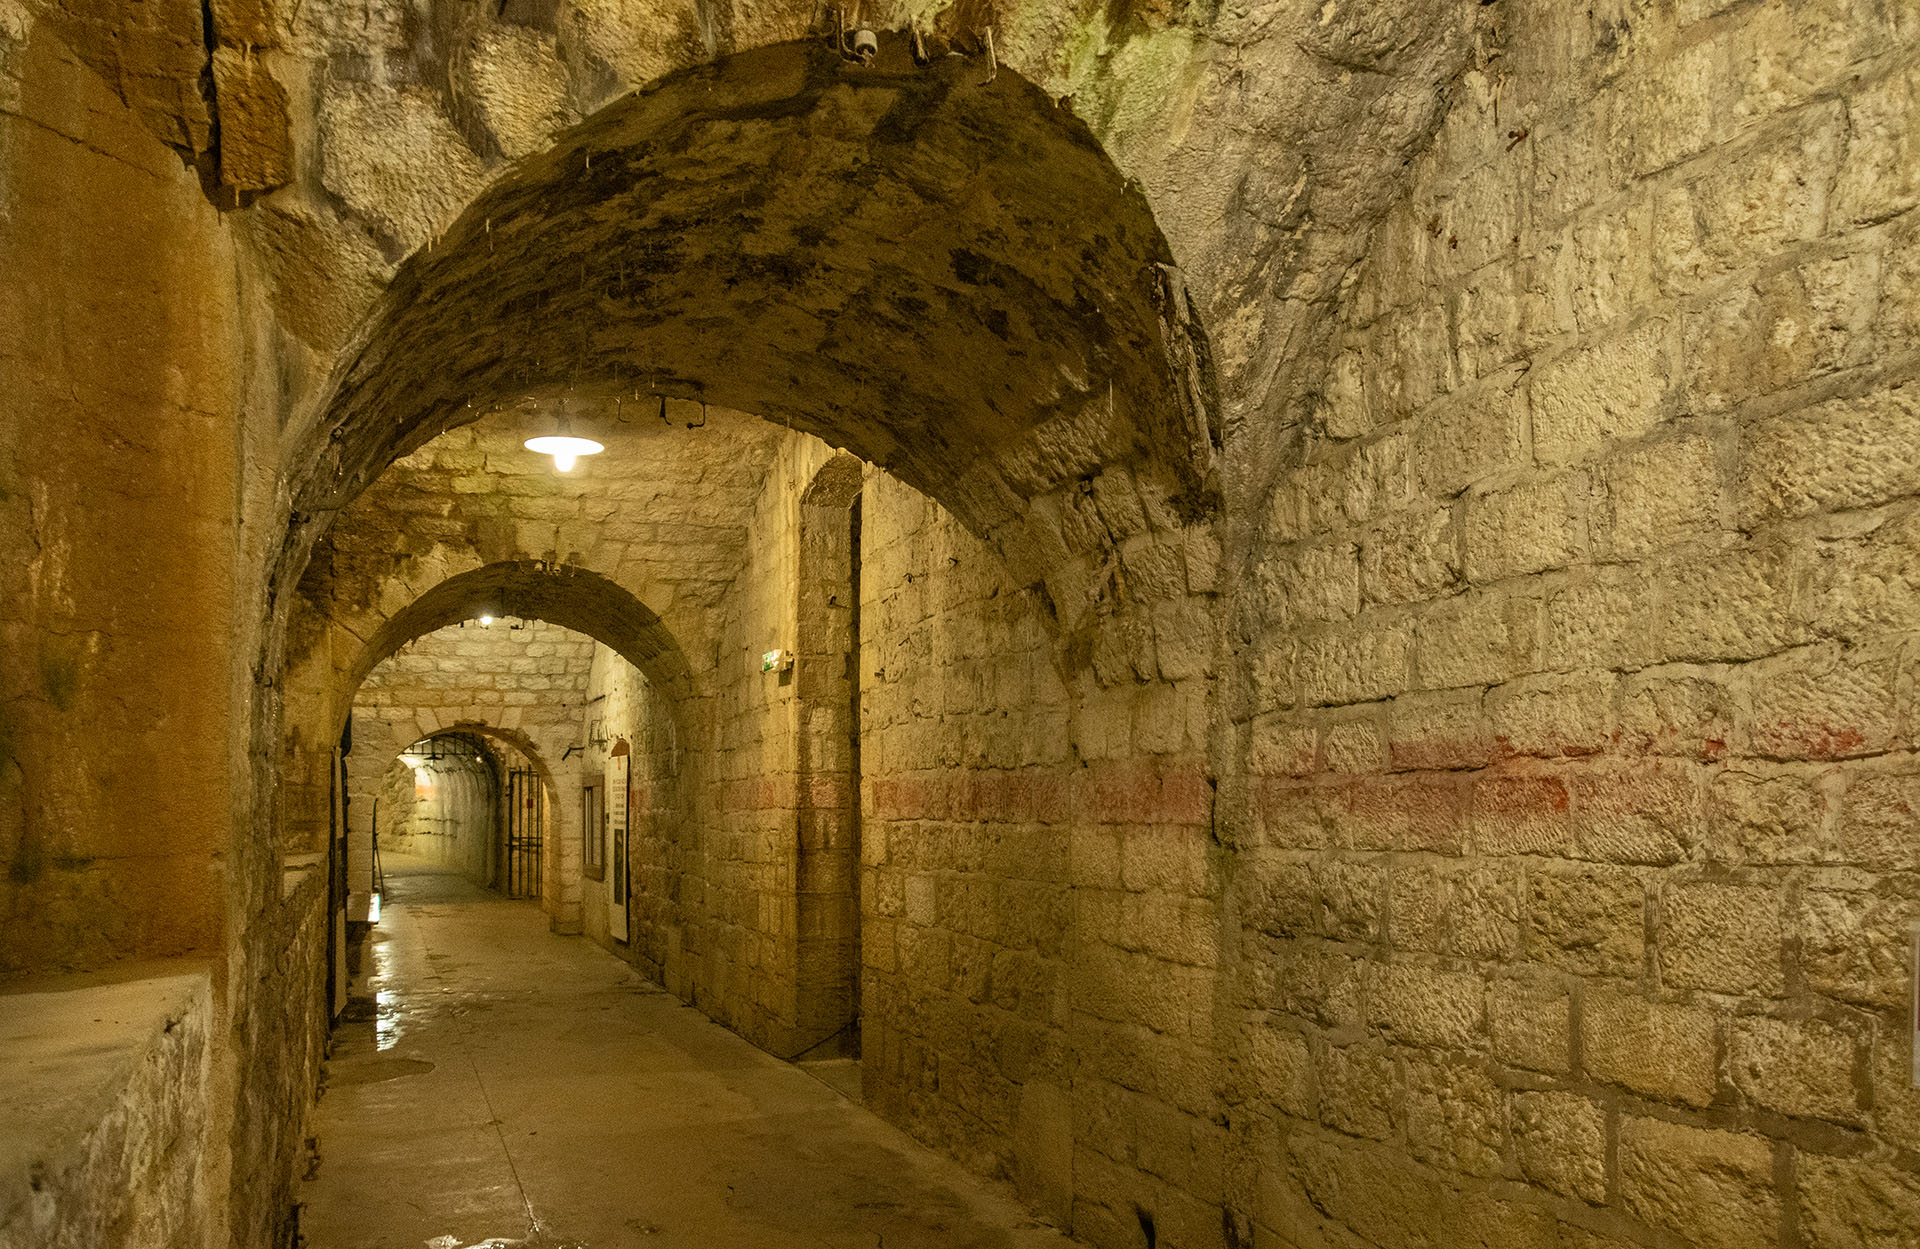 Deep inside the Fort de Vaux at Verdun, where a small French garrison were besieged by German troops, finally surrendering when water supplies ran out